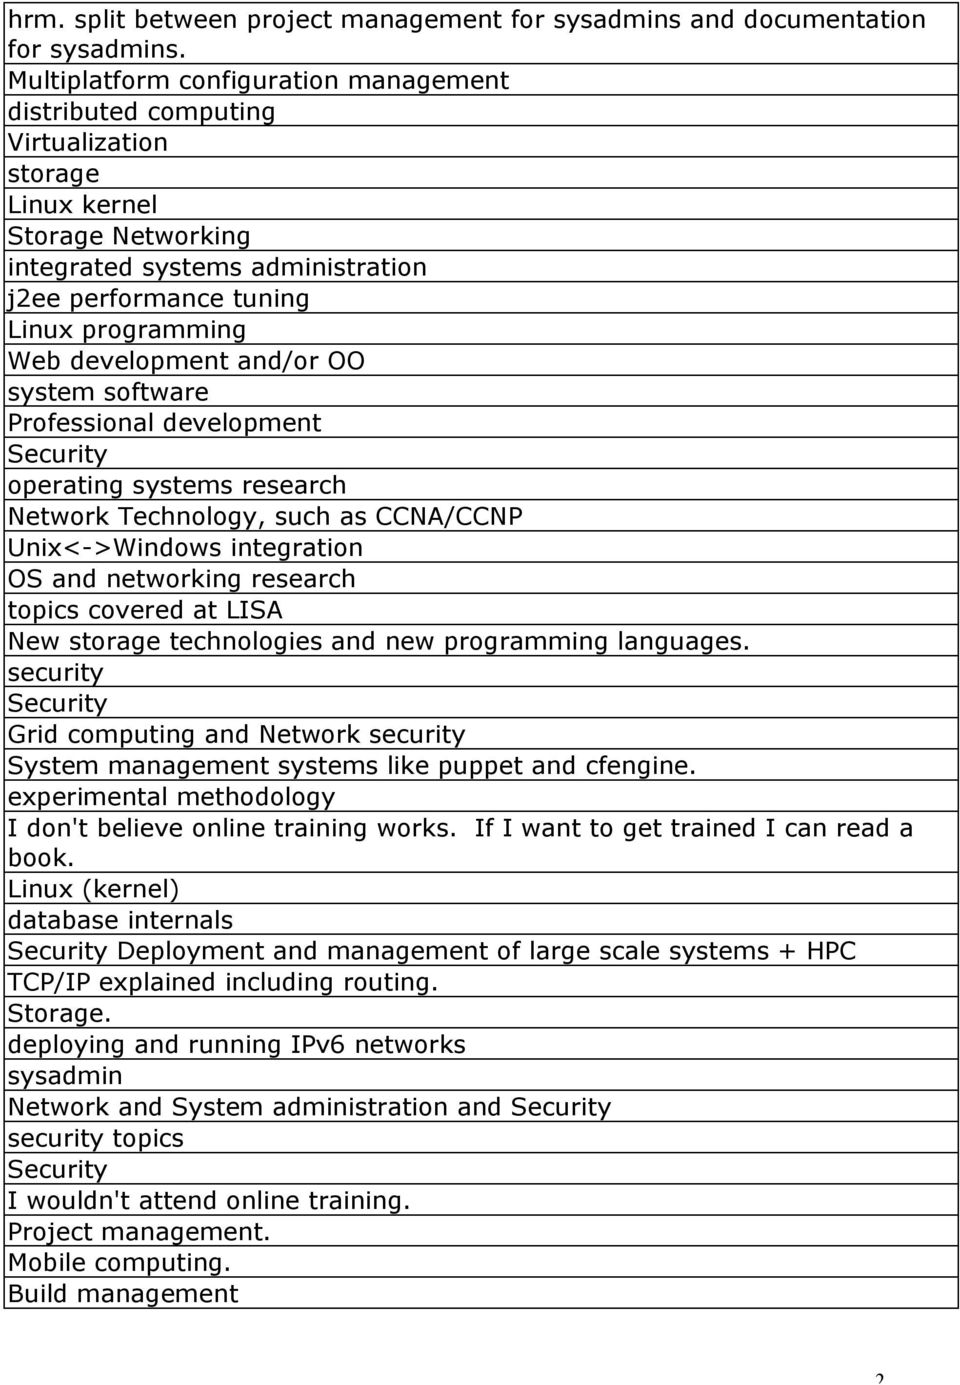 OO system software Professional development operating systems research Network Technology, such as CCNA/CCNP Unix<->Windows integration OS and networking research topics covered at LISA New storage